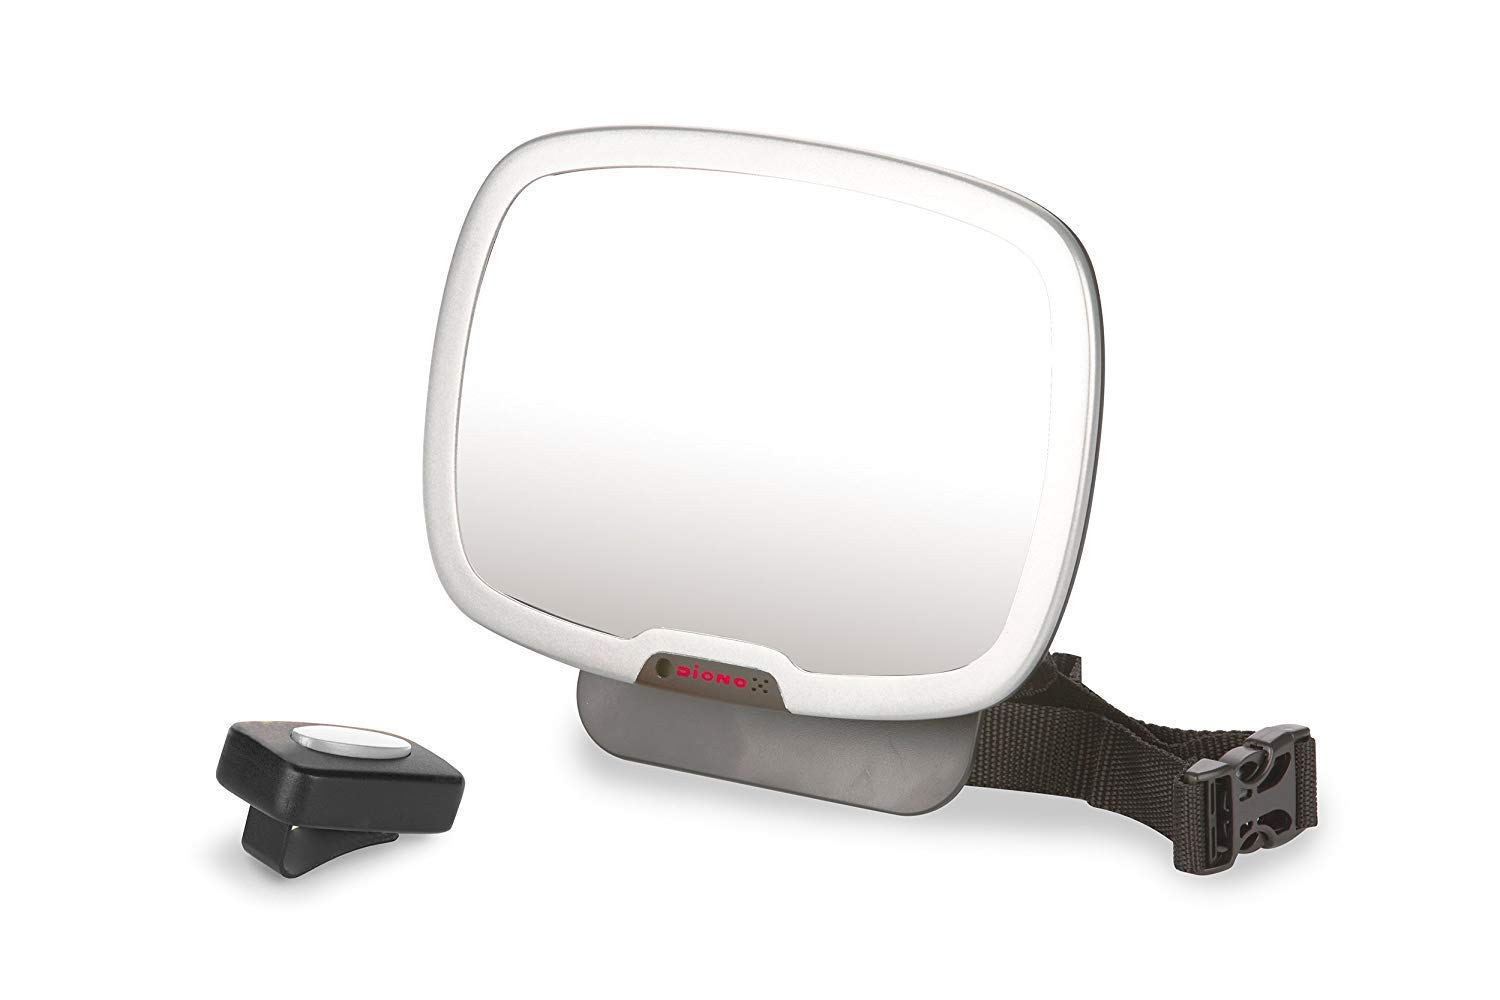 Diono Mirror Easy View - View Infant in Rear-Facing Car Seat - Sleek, Modern Backseat Mirror Rotates 360 Degrees, Pivots for Perfect Viewing Angle - Easy to Attach, Universal - Silver by Diono